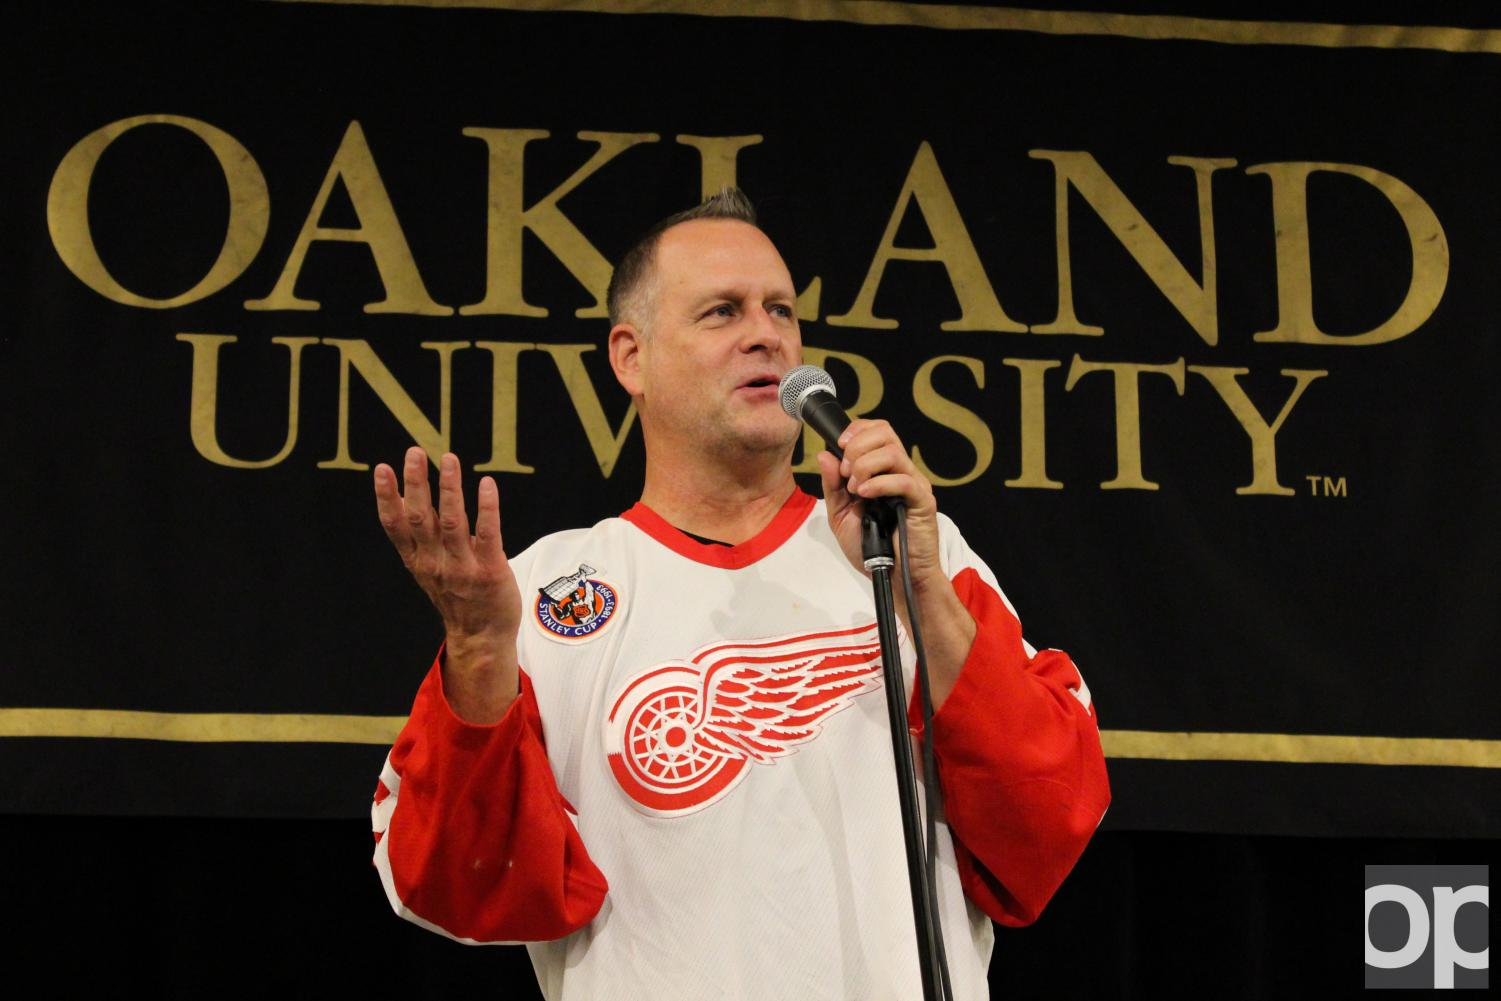 Dave Coulier ended his tour of the U.S. with Oakland to share his humor and experiences as an actor and comedian.